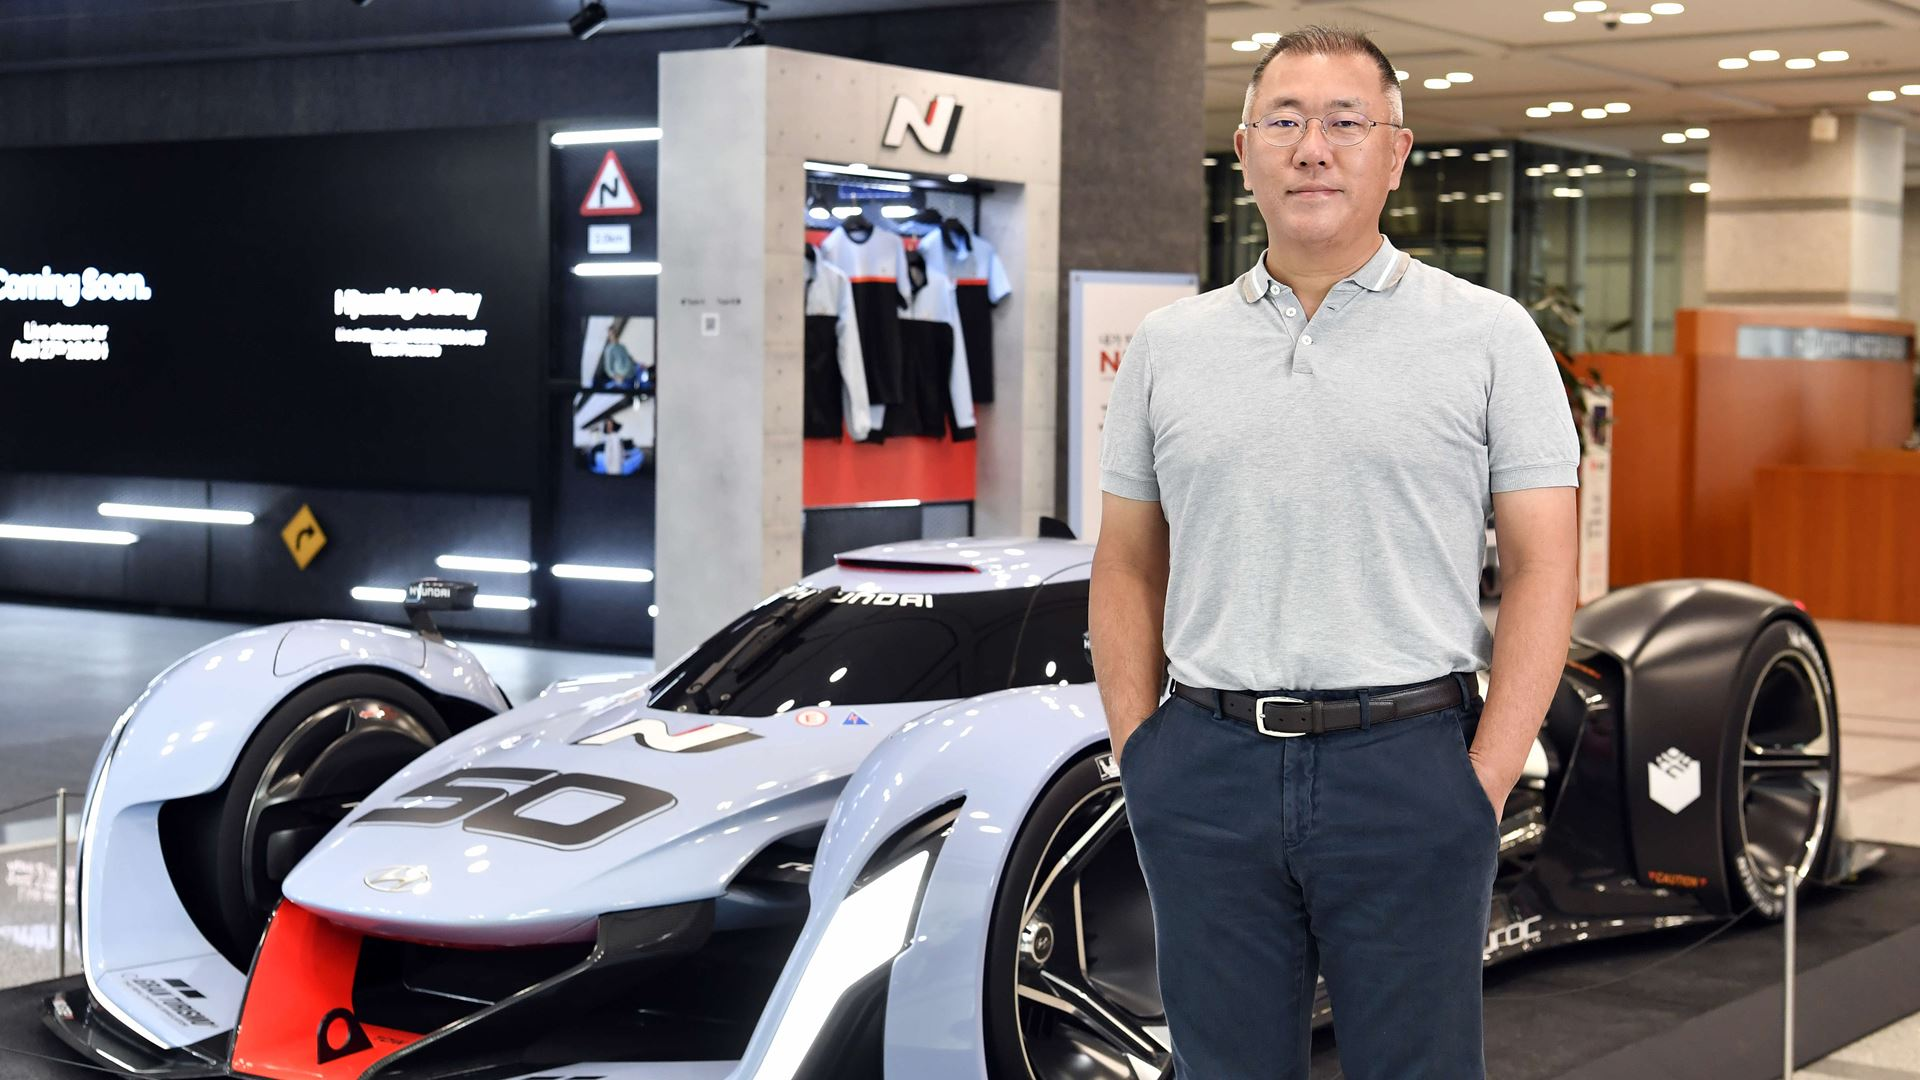 Hyundai Motor Group Chairman Euisun Chung Honored with the Issigonis Trophy at the 2021 Autocar Awards - Image 1